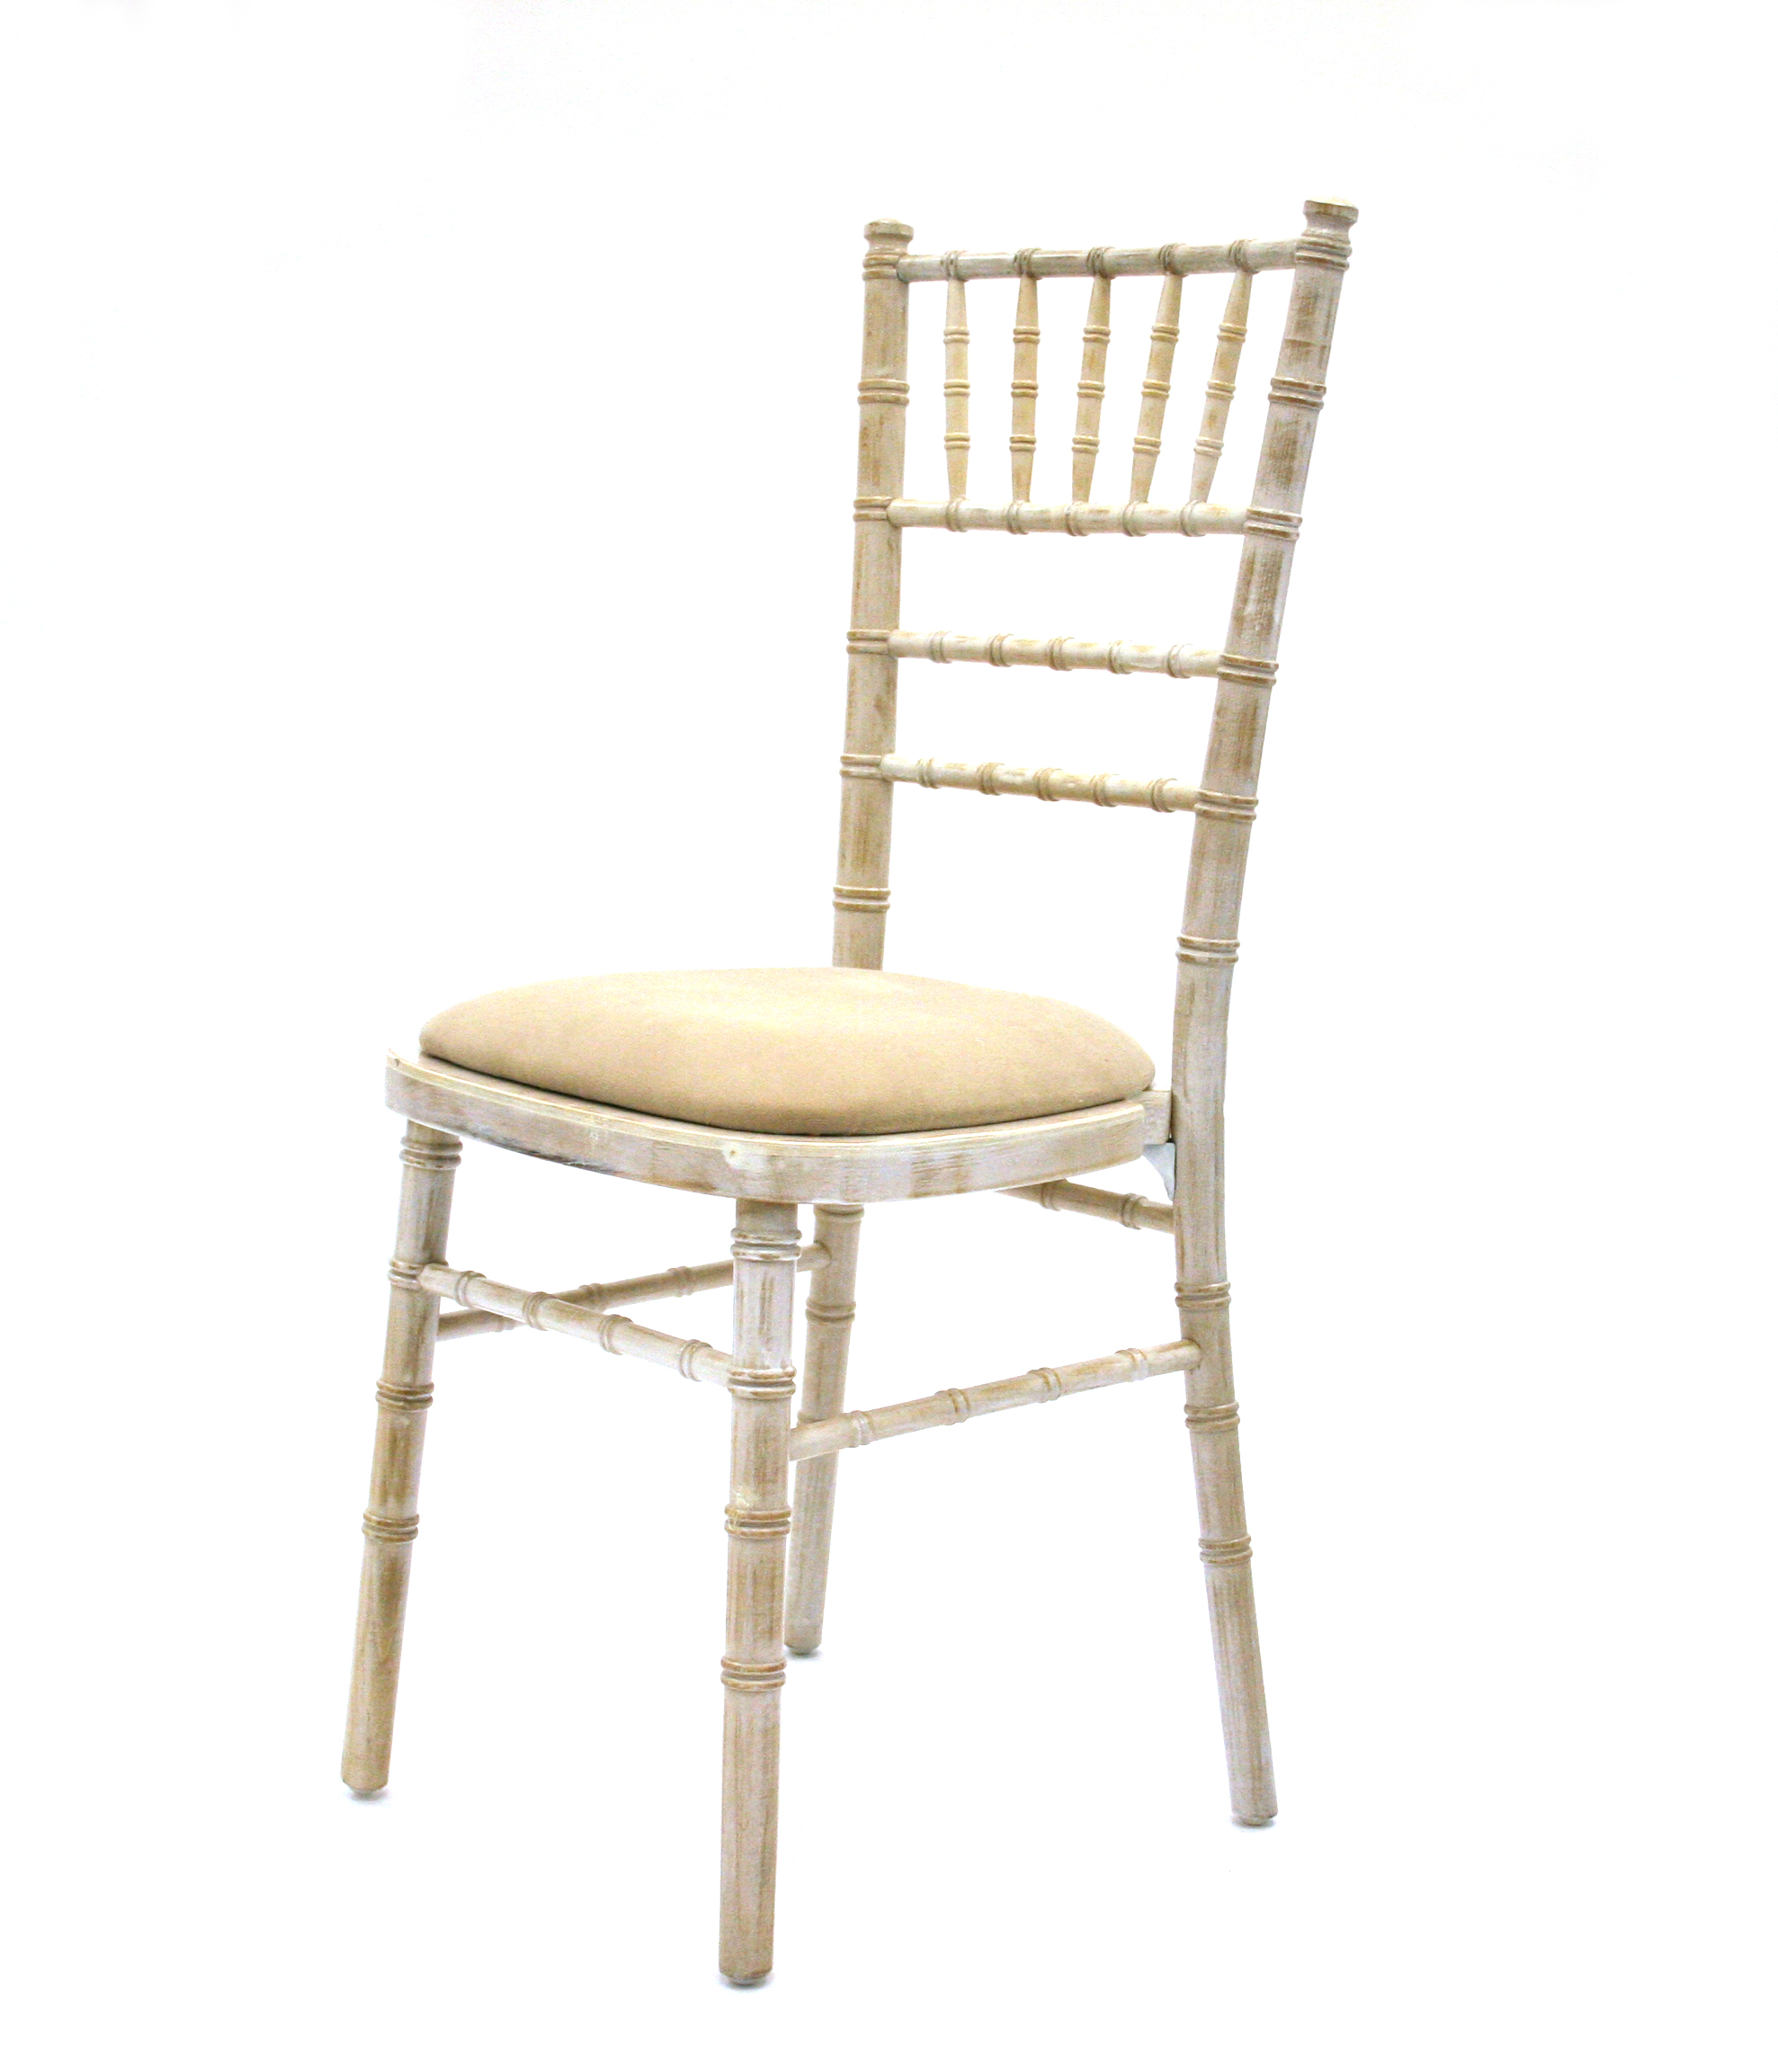 Limewash chiavari chair suitable for weddings and events be event hire